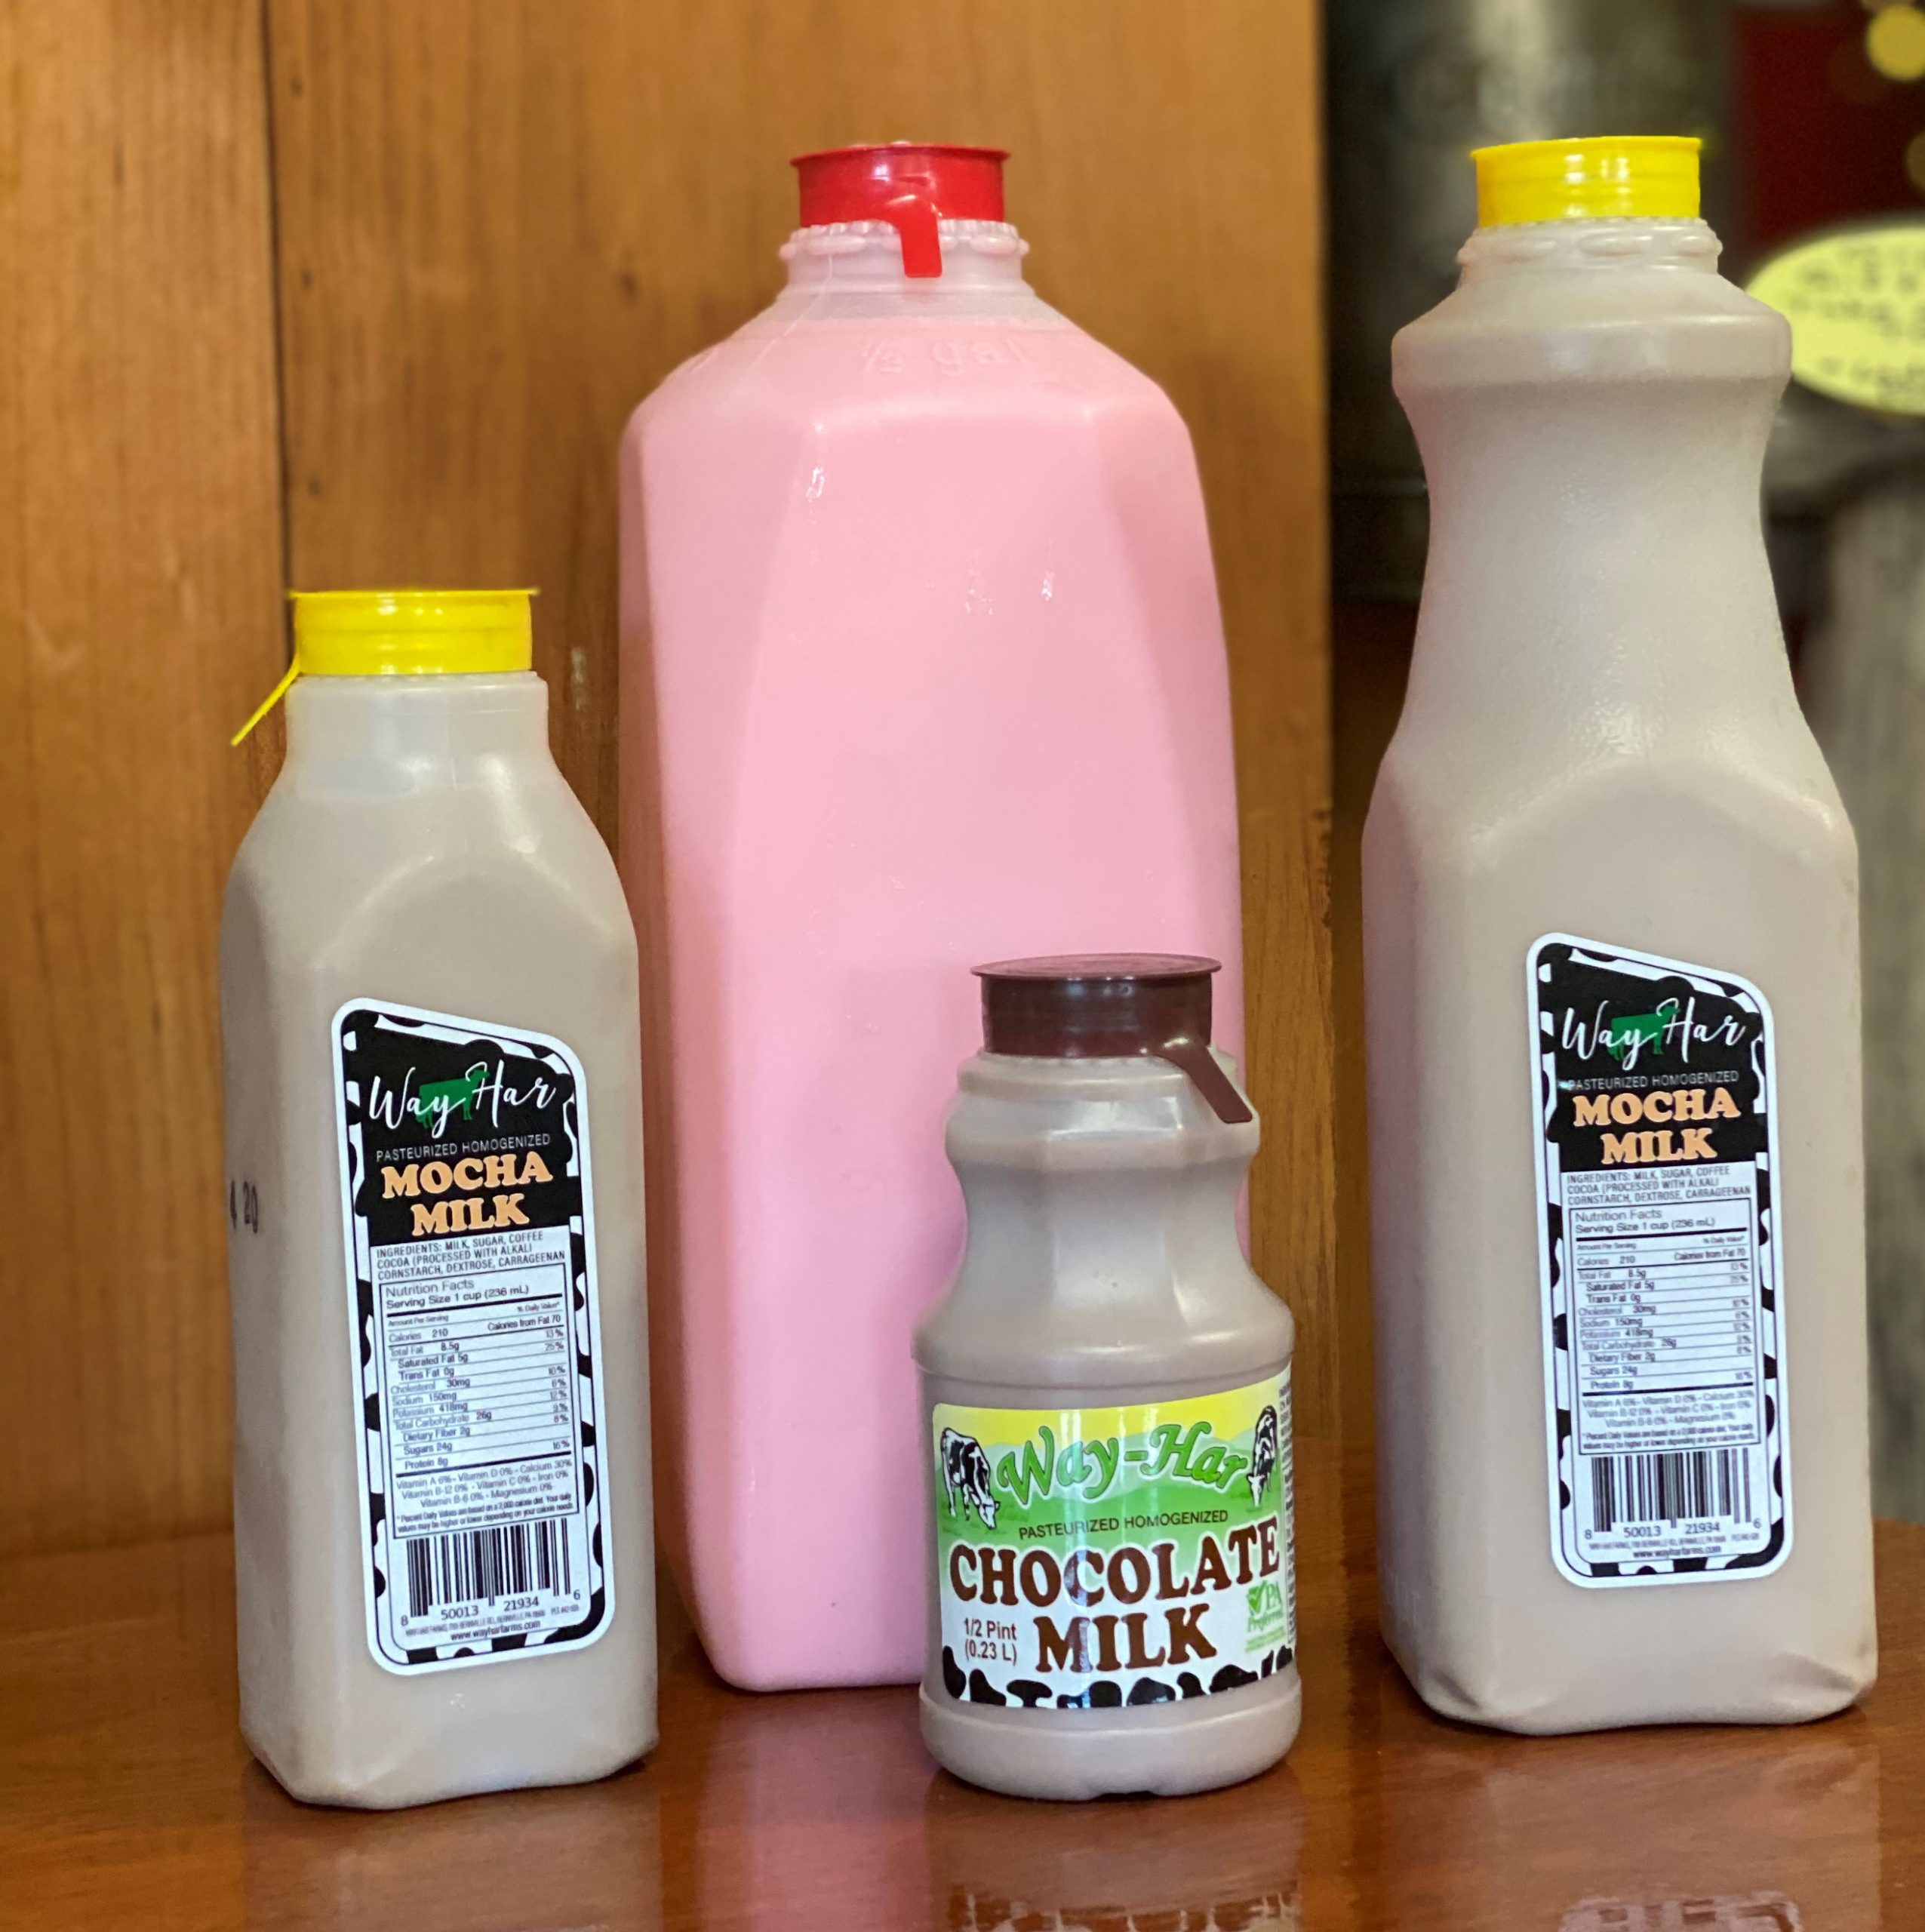 Mocha Milk, Strawberry Milk, and Chocolate Milk made farm fresh at Wa-Har Farm in Bernville PA.